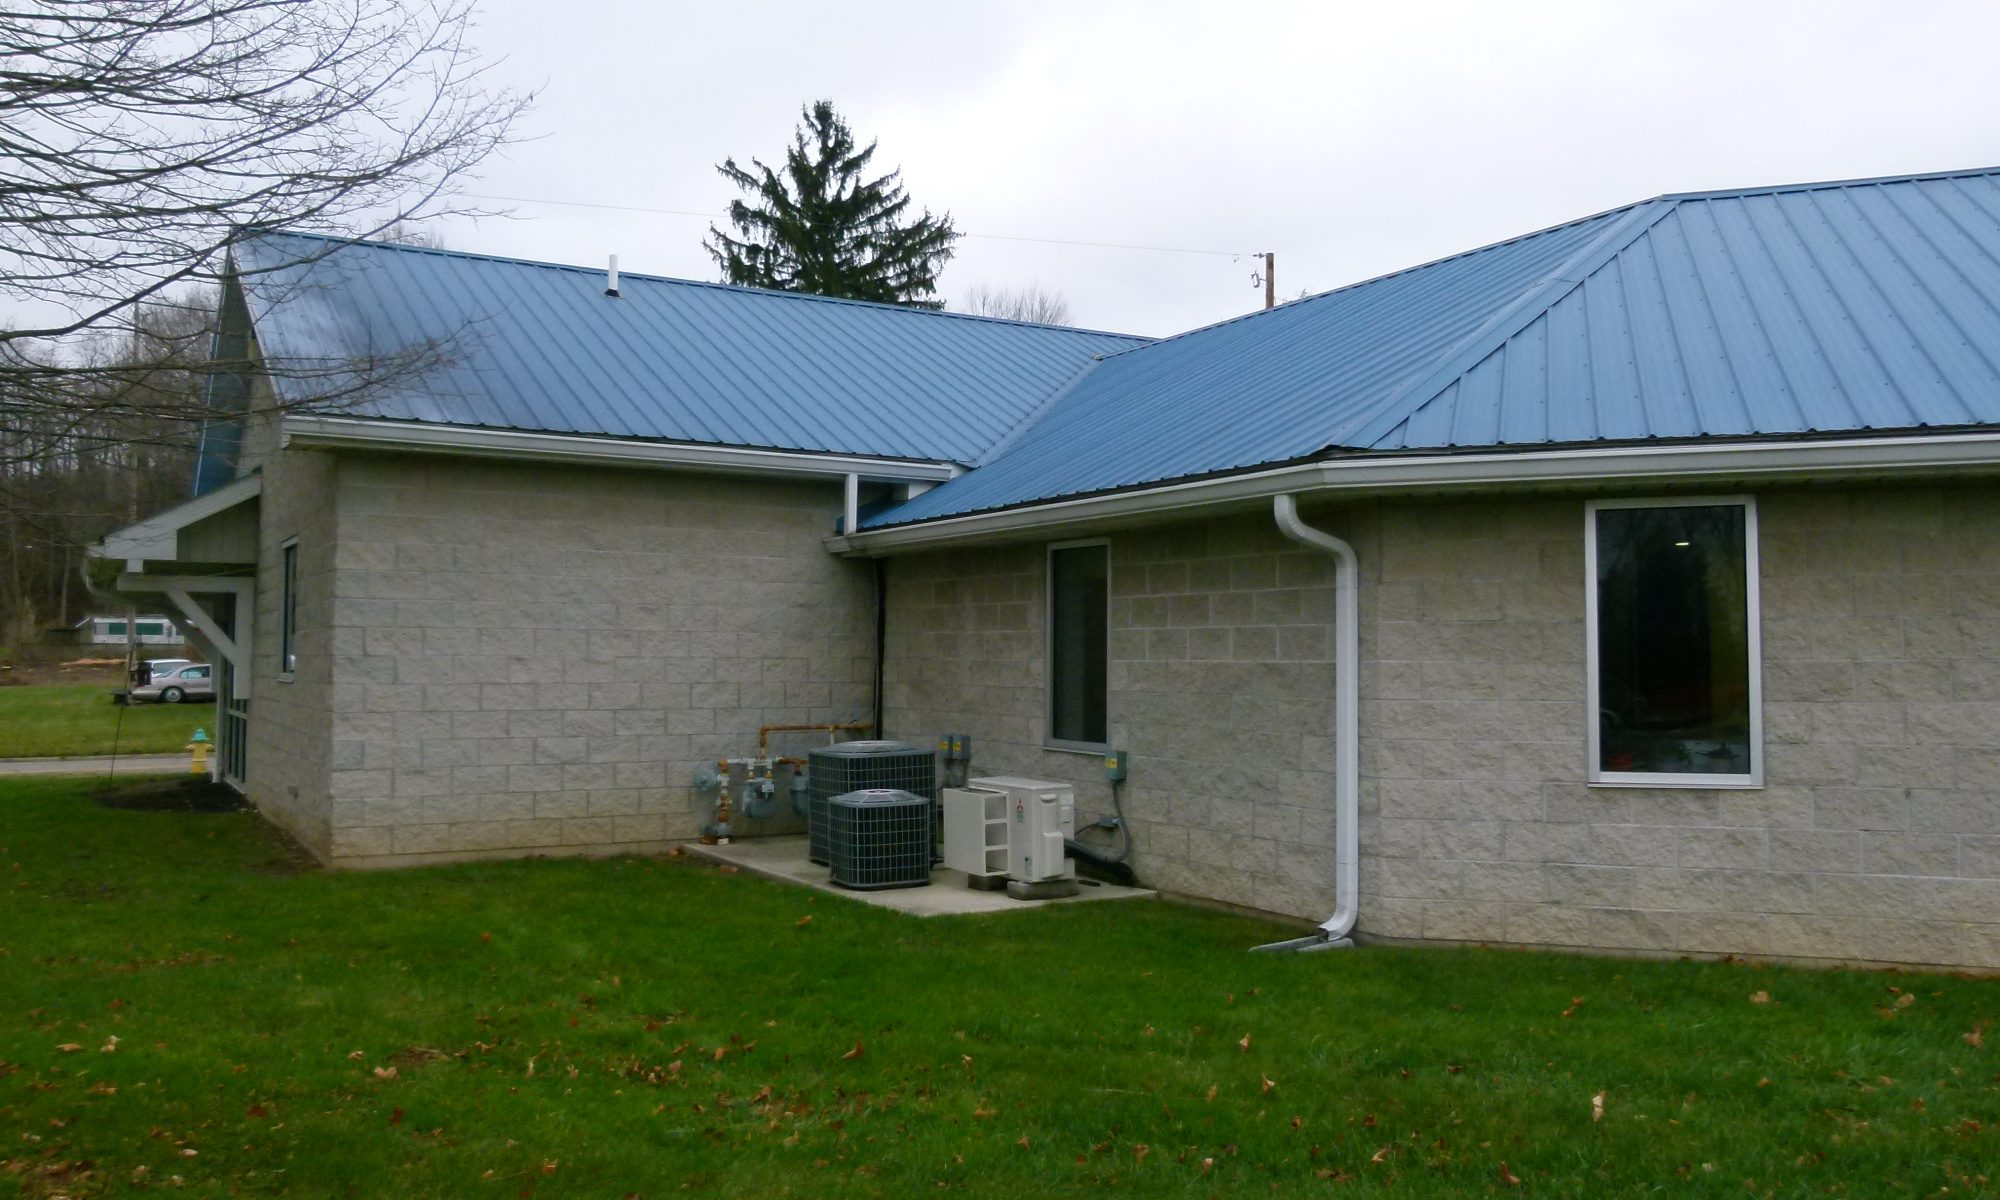 microscreen gutter guard installed on building with metal roof